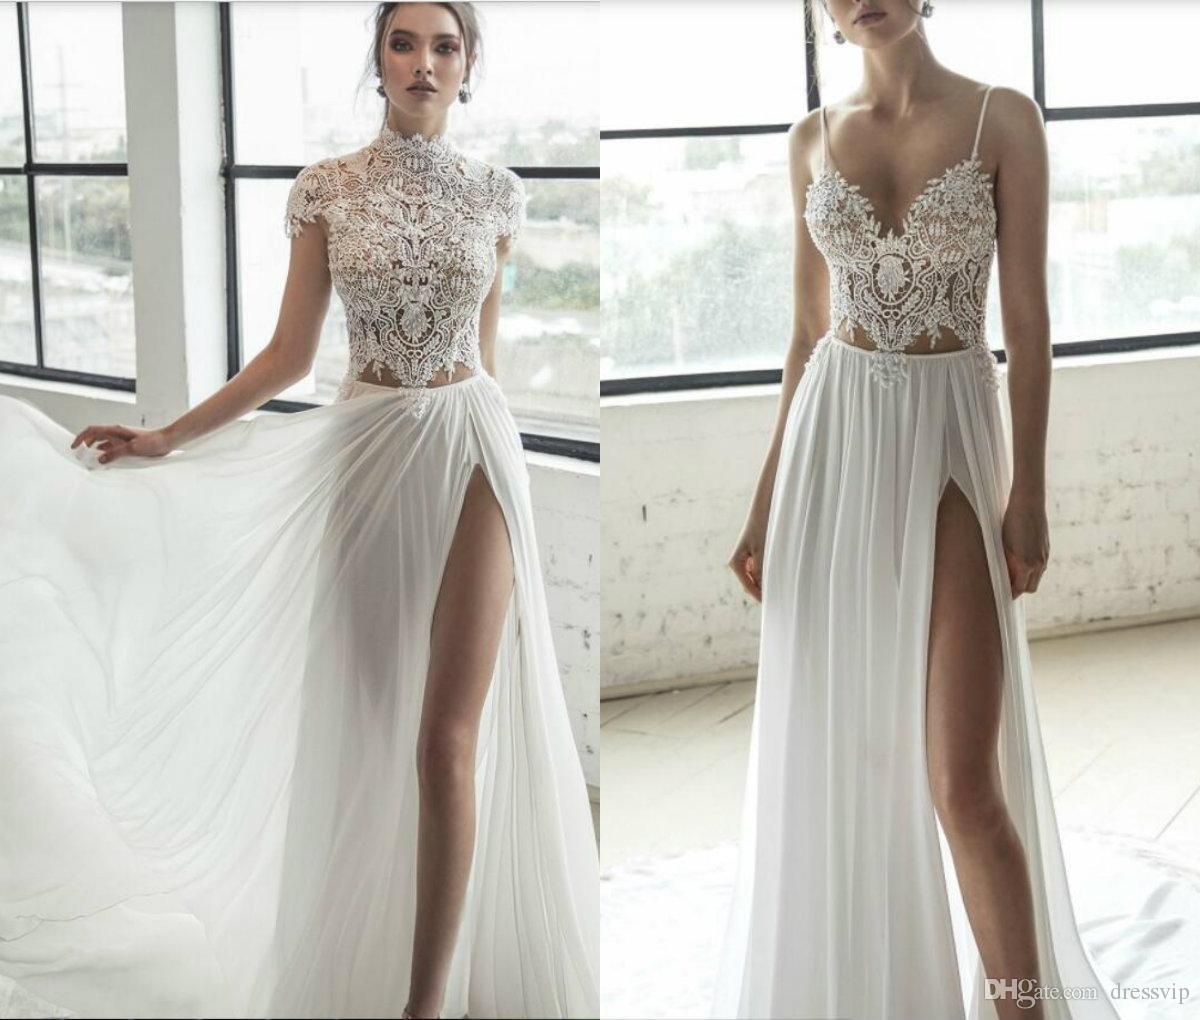 Bridal Dresses 2019: Discount 2019 Julie Vino Beach Wedding Dresses With Wrap